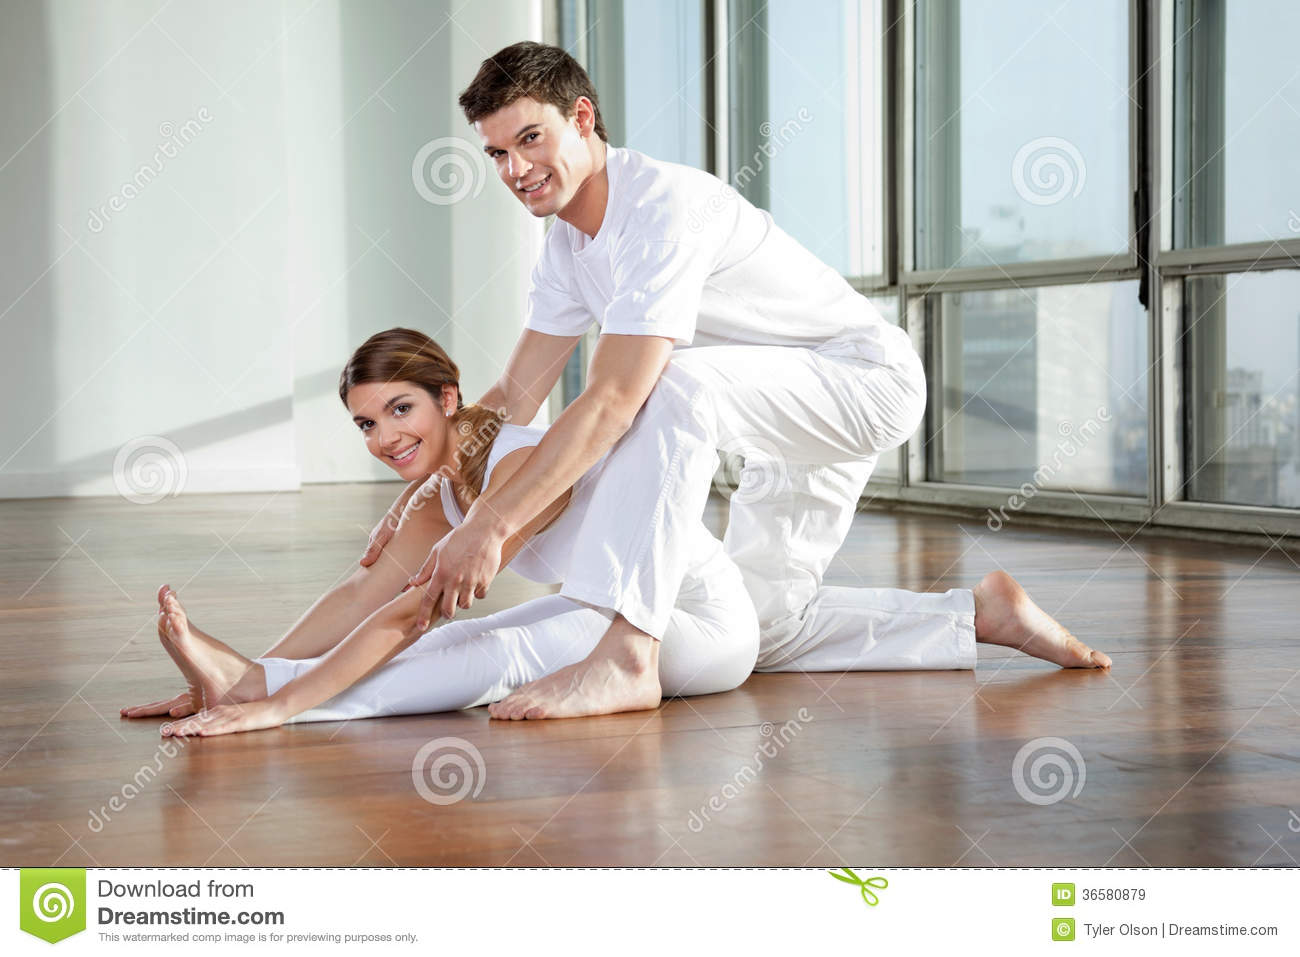 Male Yoga Instructor Assisting Woman Royalty Free Stock